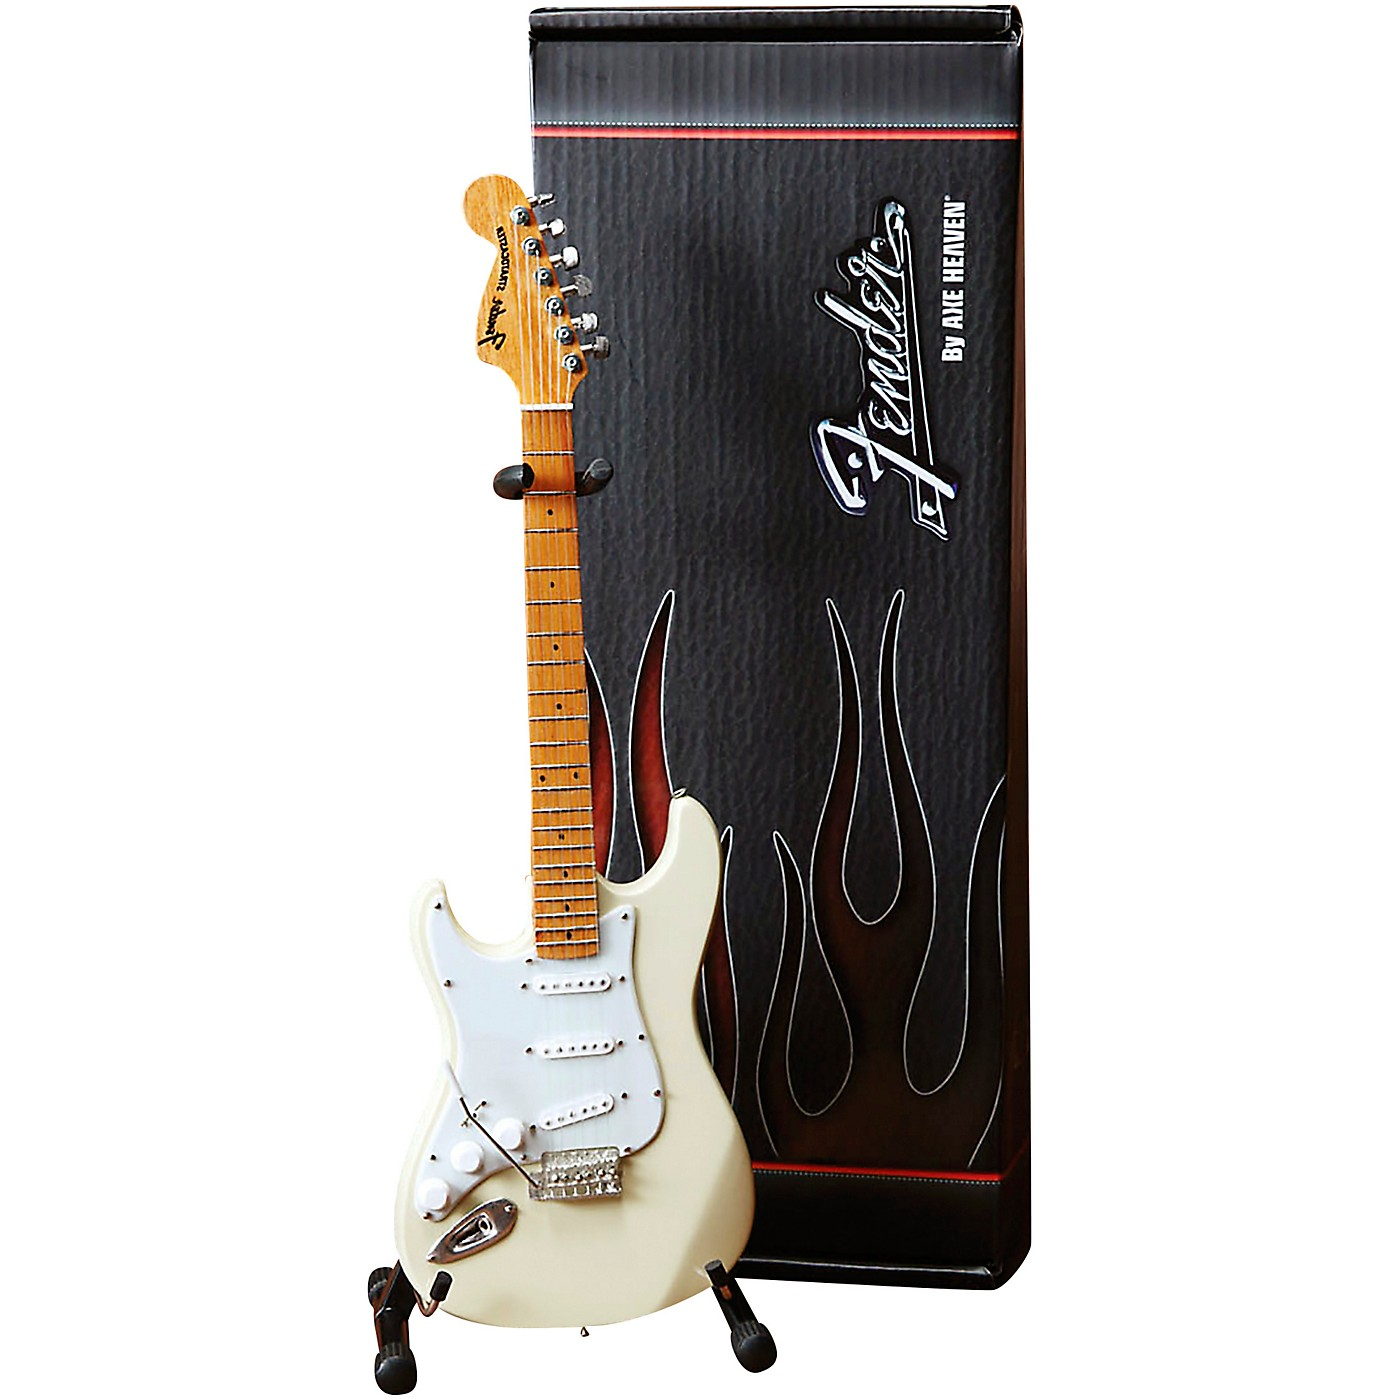 Axe Heaven Fender Stratocaster White with Reverse Headstock for Leftys Officially Licensed Mini Guitar Replica thumbnail